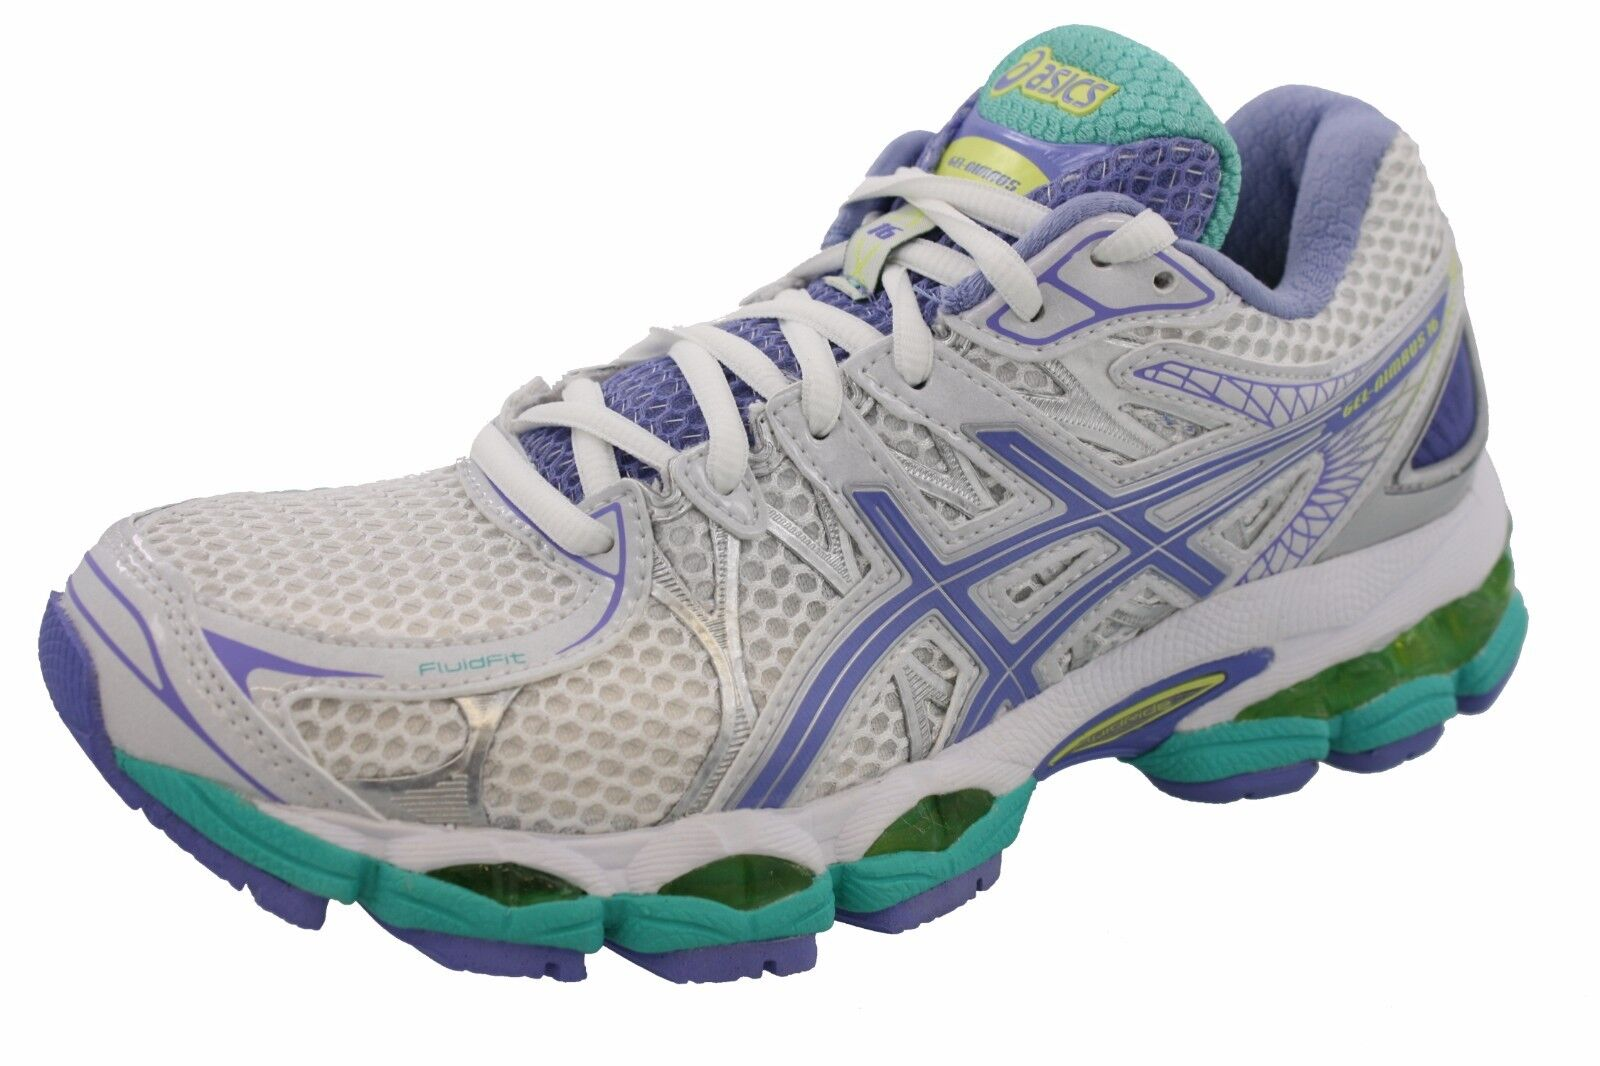 ASICS WOMENS GEL NIMBUS 16 T485N MEDIUM WIDTH RUNNING SHOES New shoes for men and women, limited time discount